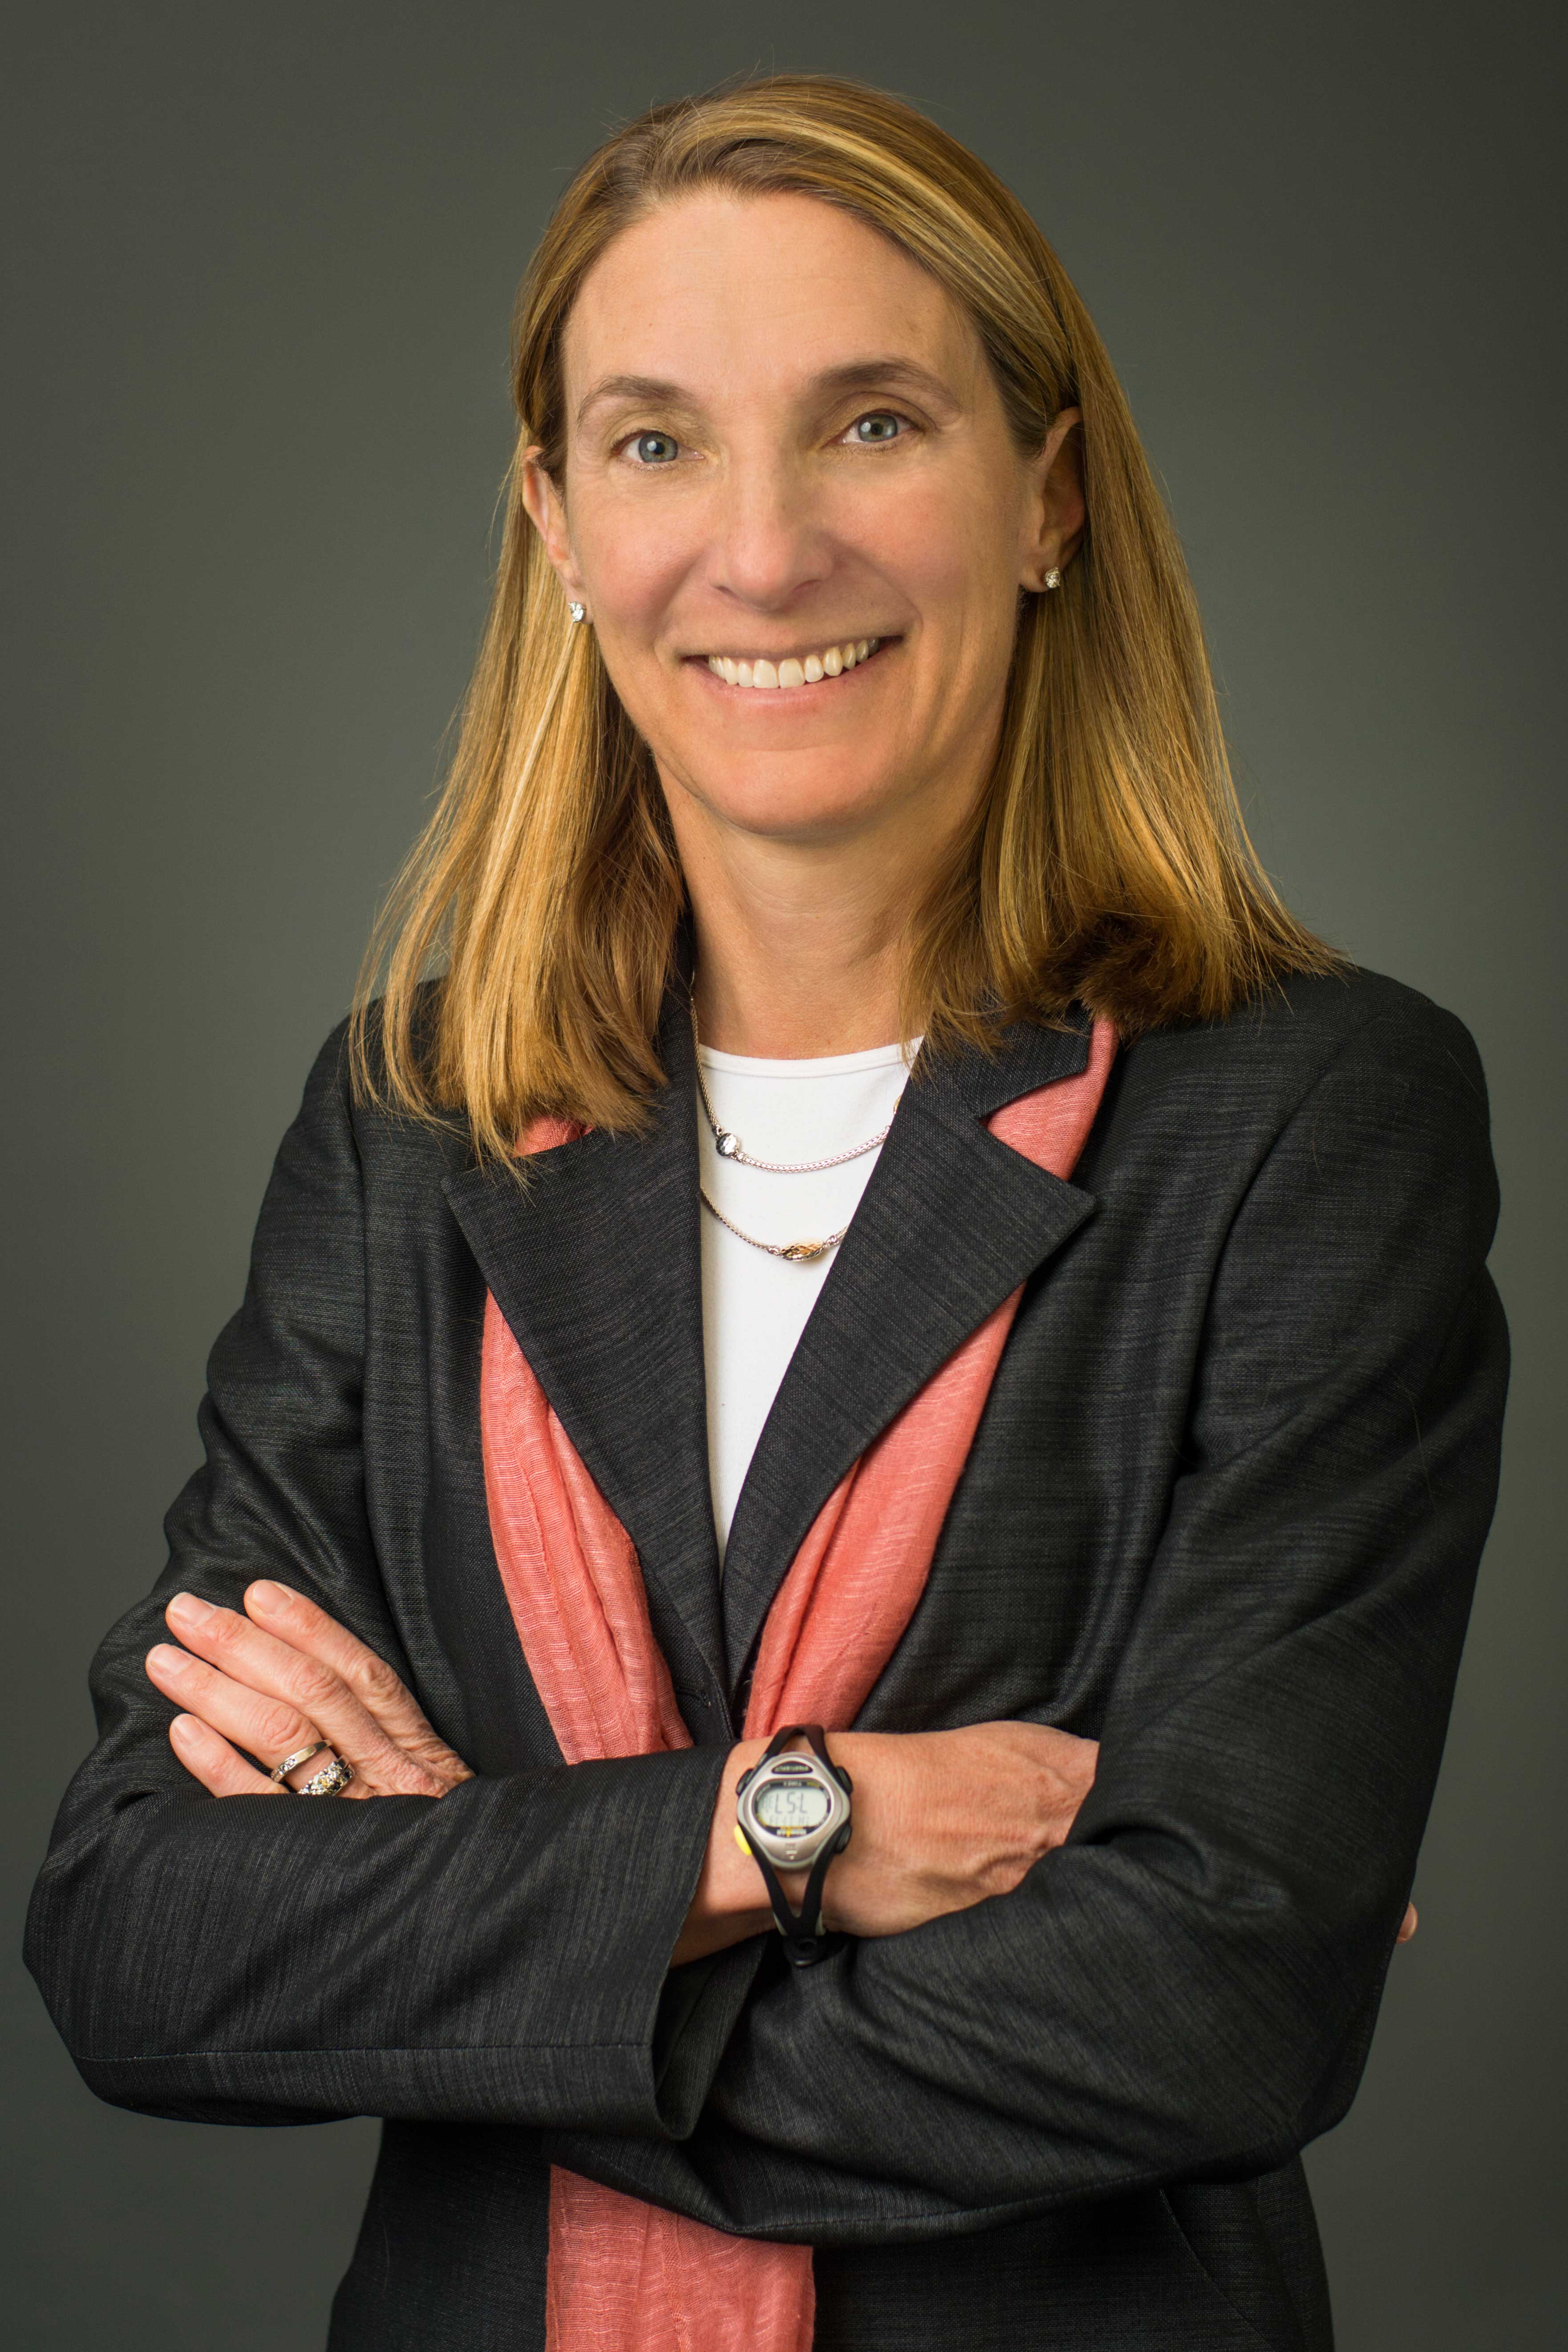 The corner office: UCHealth CEO Liz Concordia on zeroing in on the